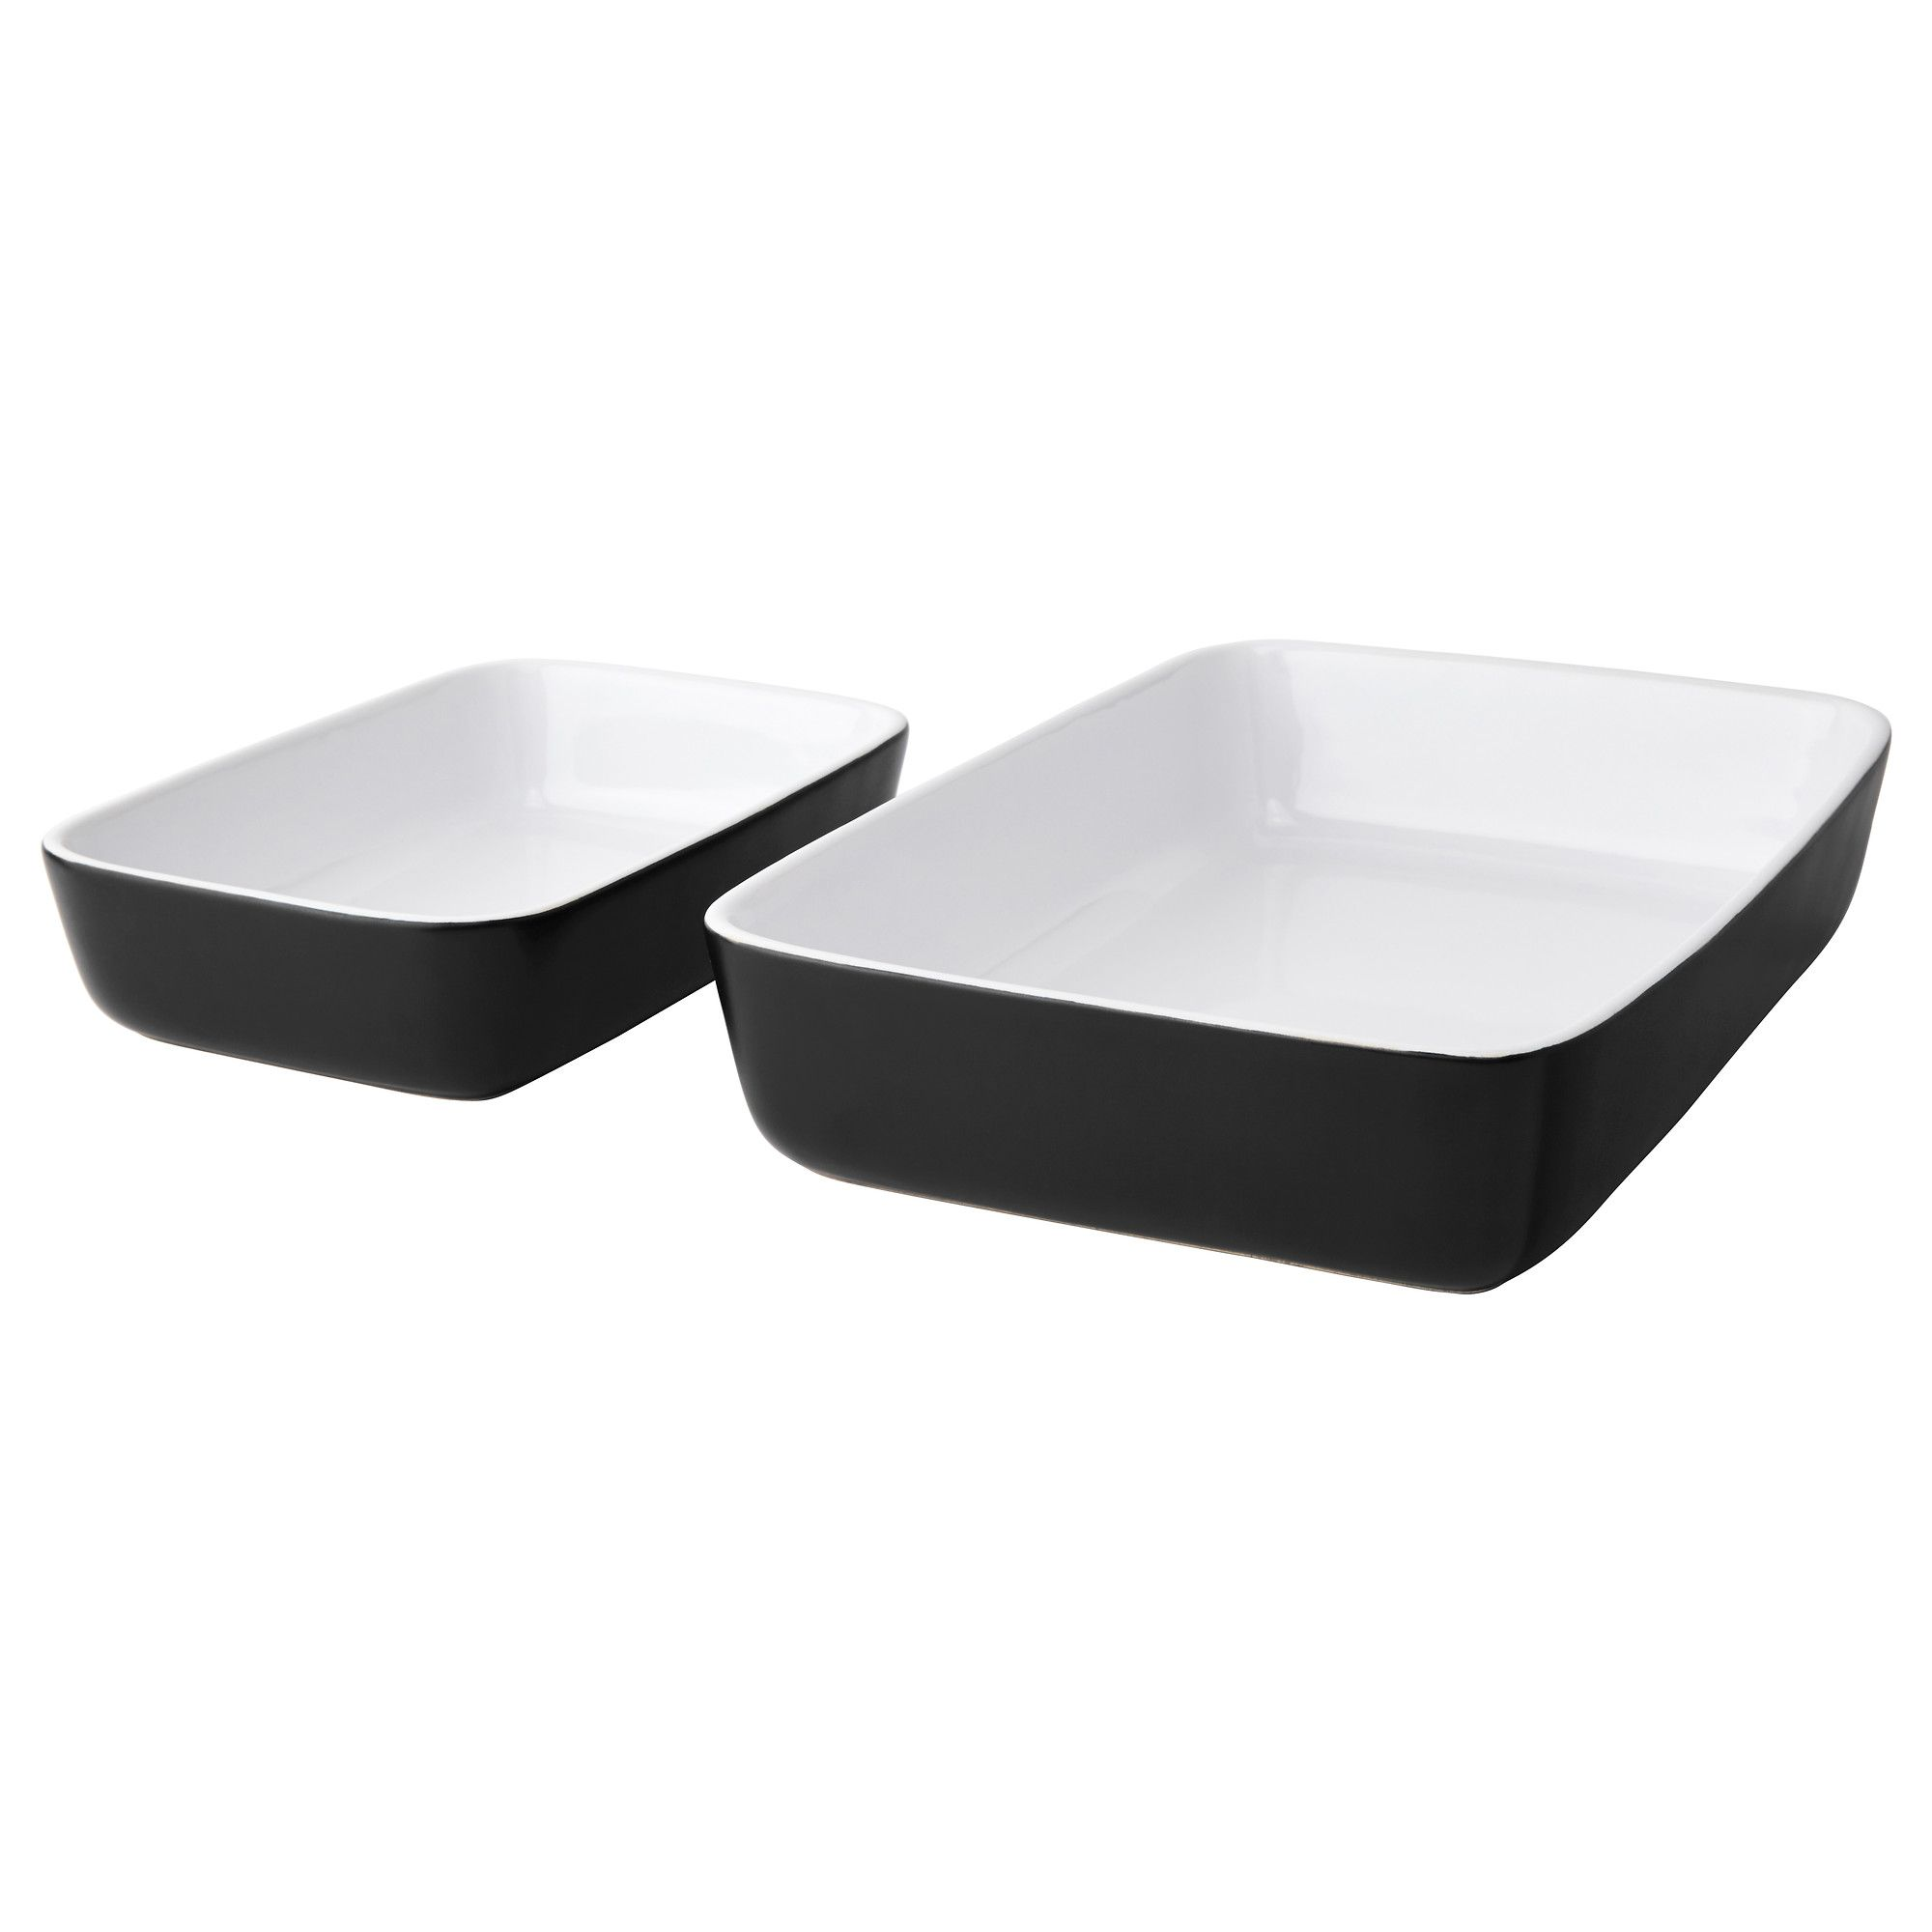 LYCKAD Platà four service lot de 2 IKEA Art de la table Pinterest Mon homme, Ikea et